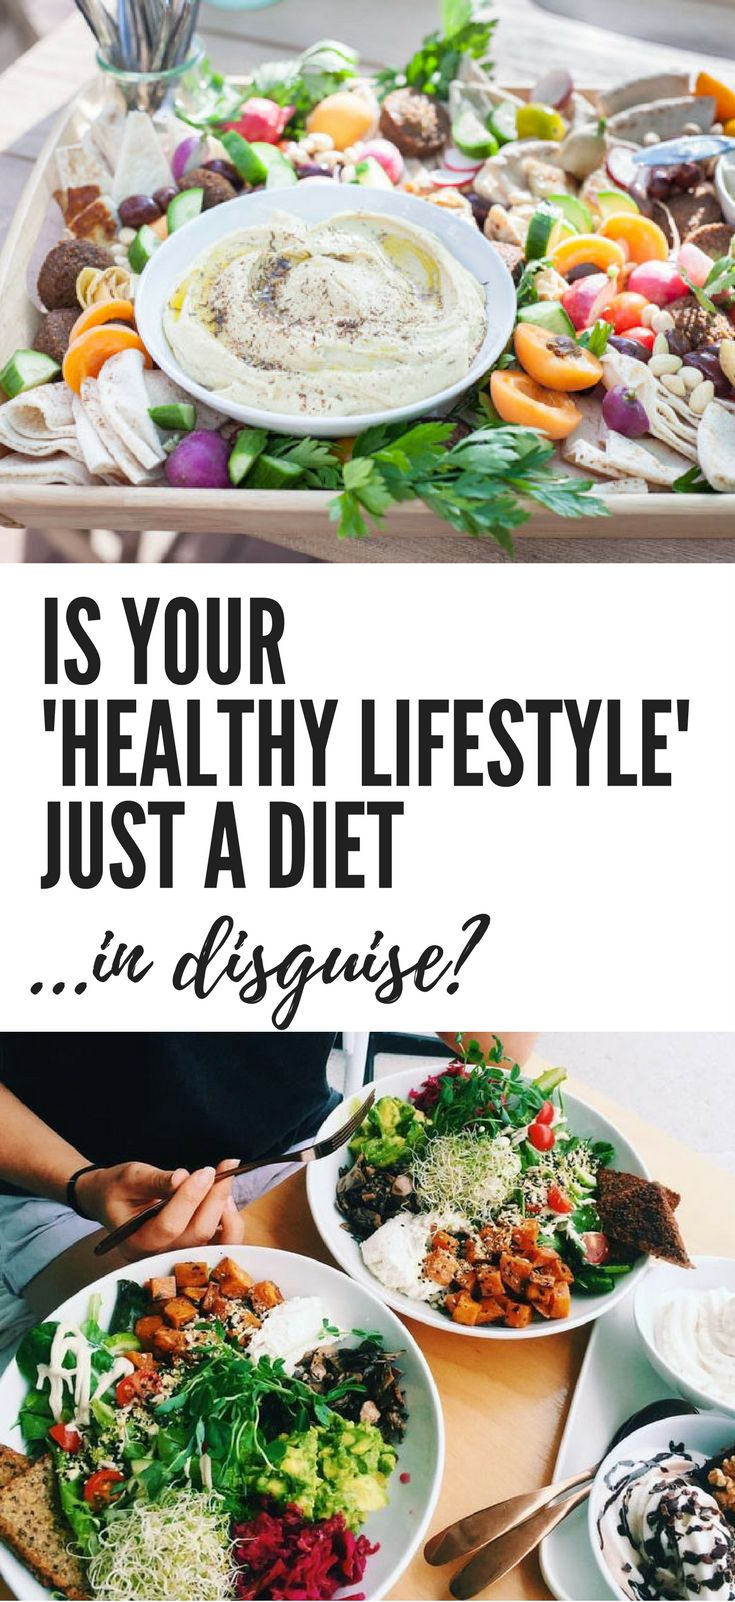 Are you dieting without realising? Check to make sure you're not sabotaging your health and weight.